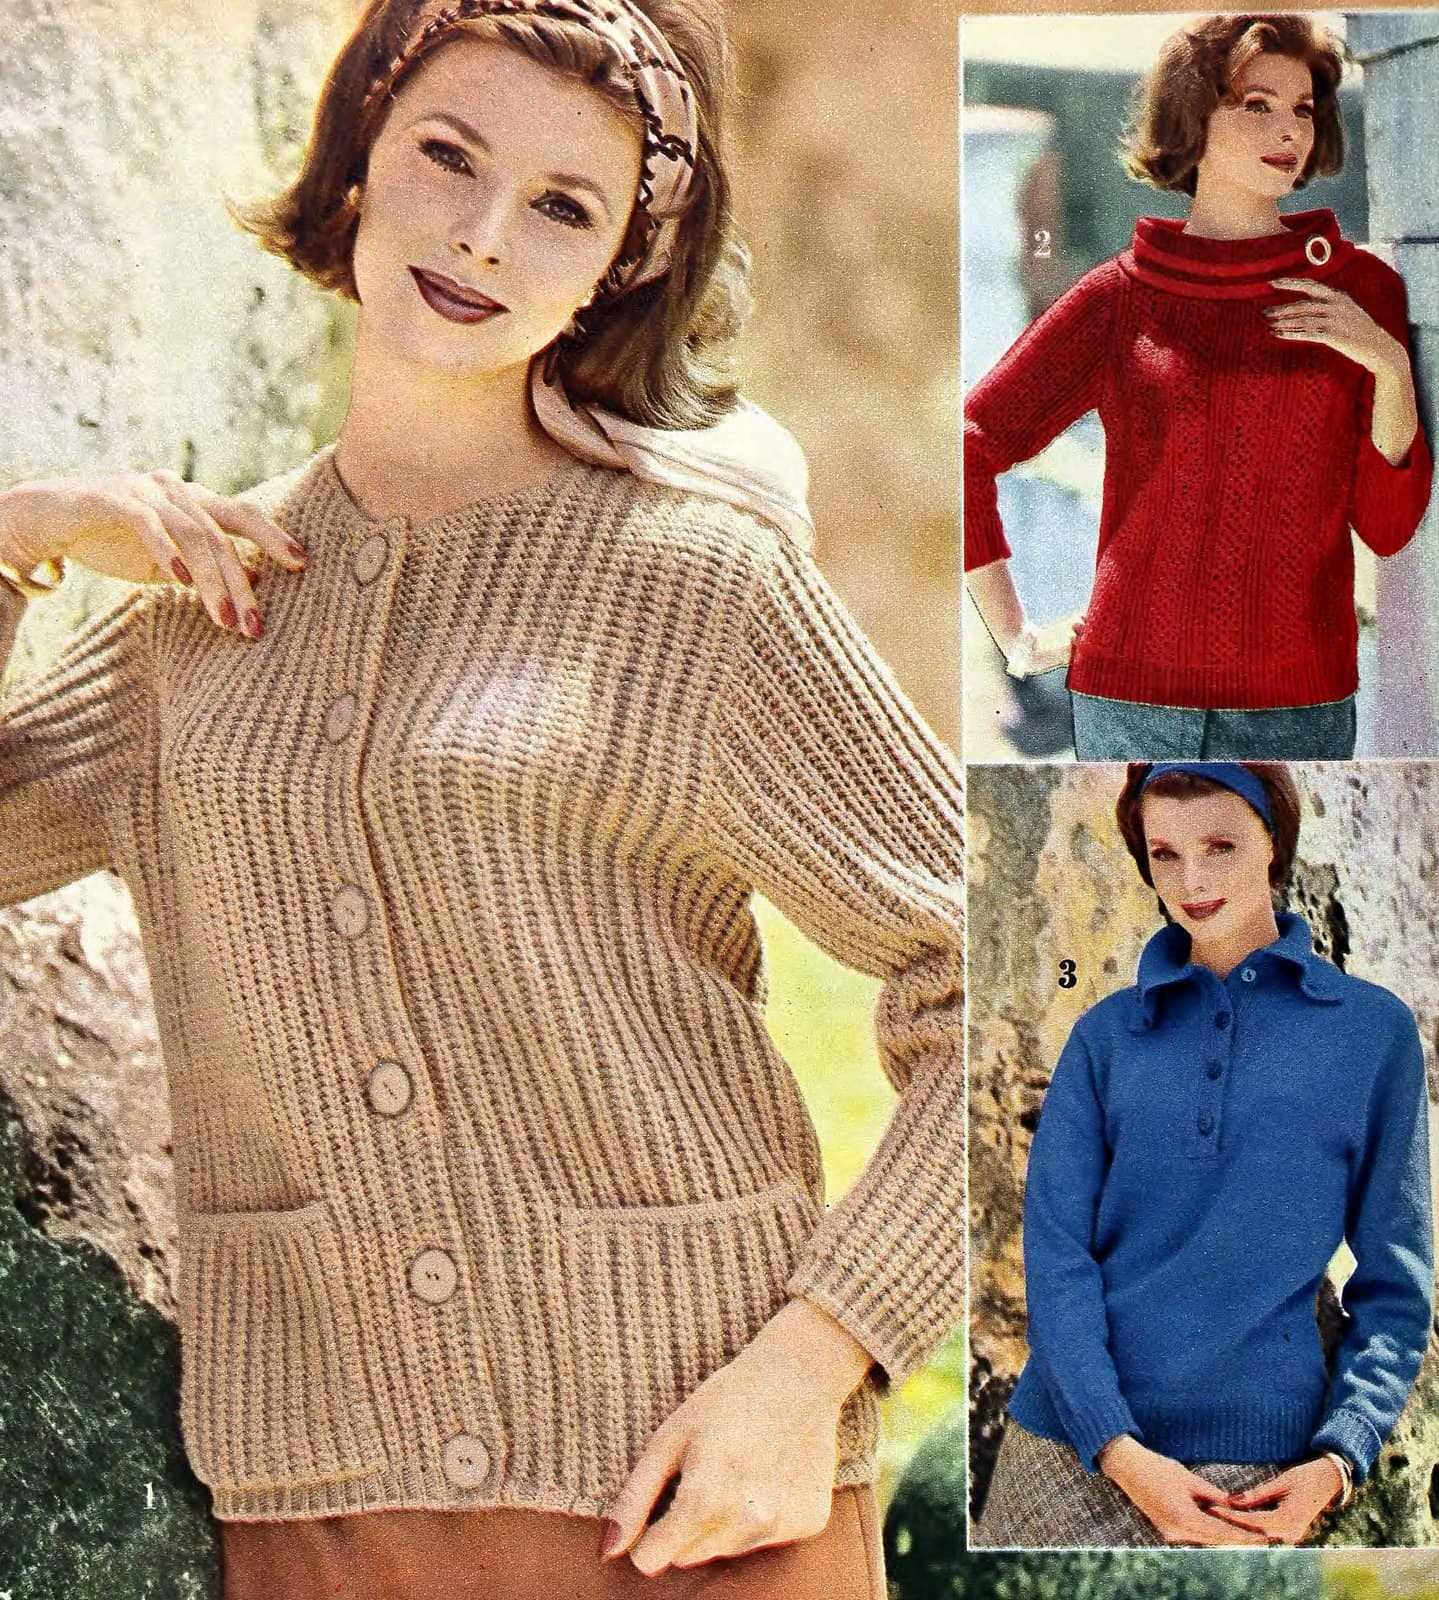 Sixties sweater styles from 1962 (4)